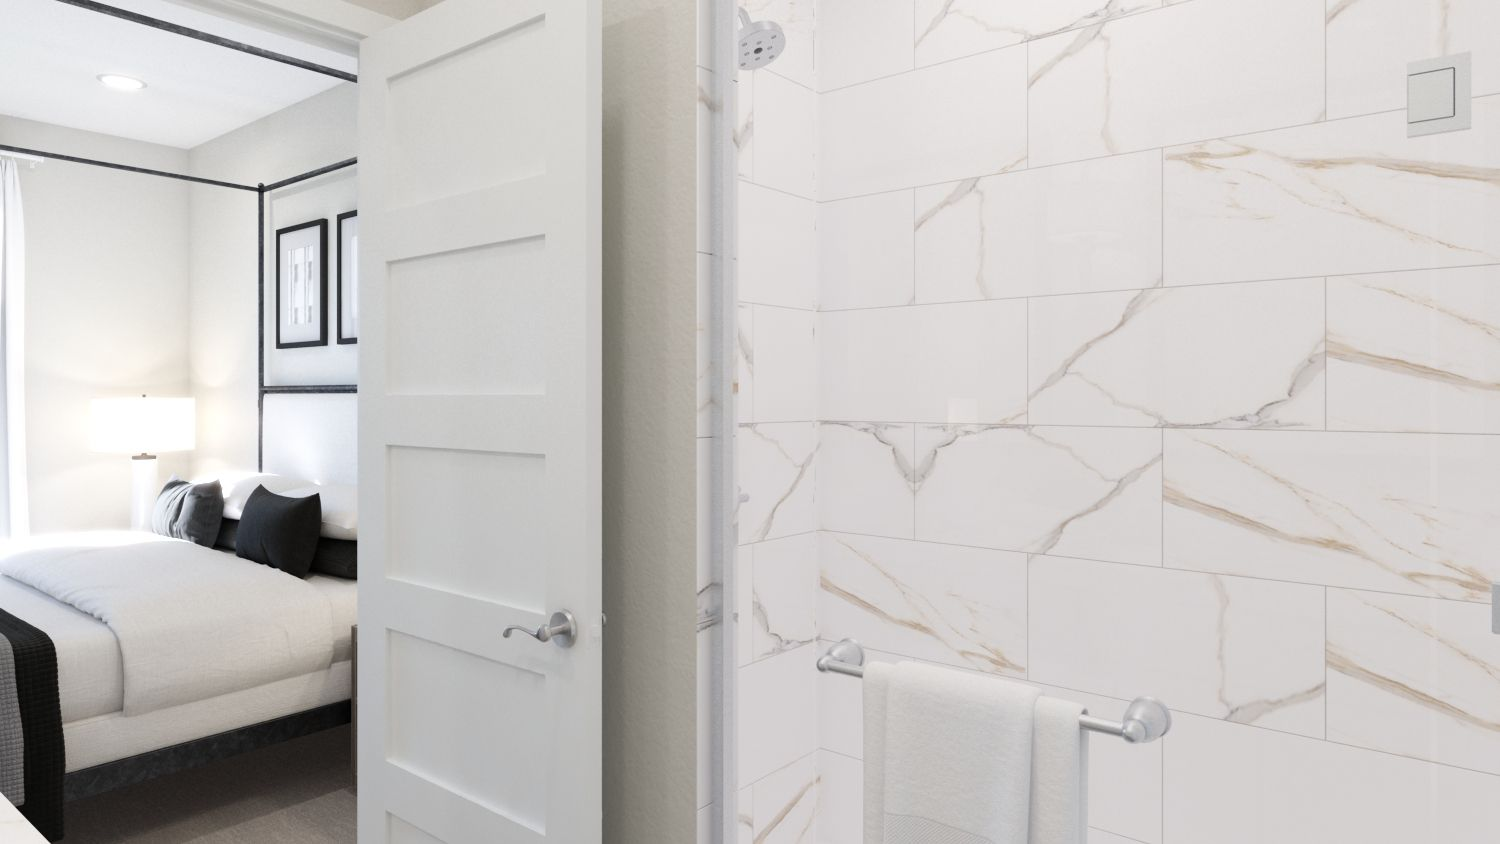 Bathroom featured in the Plan 3A By Melia in Orange County, CA